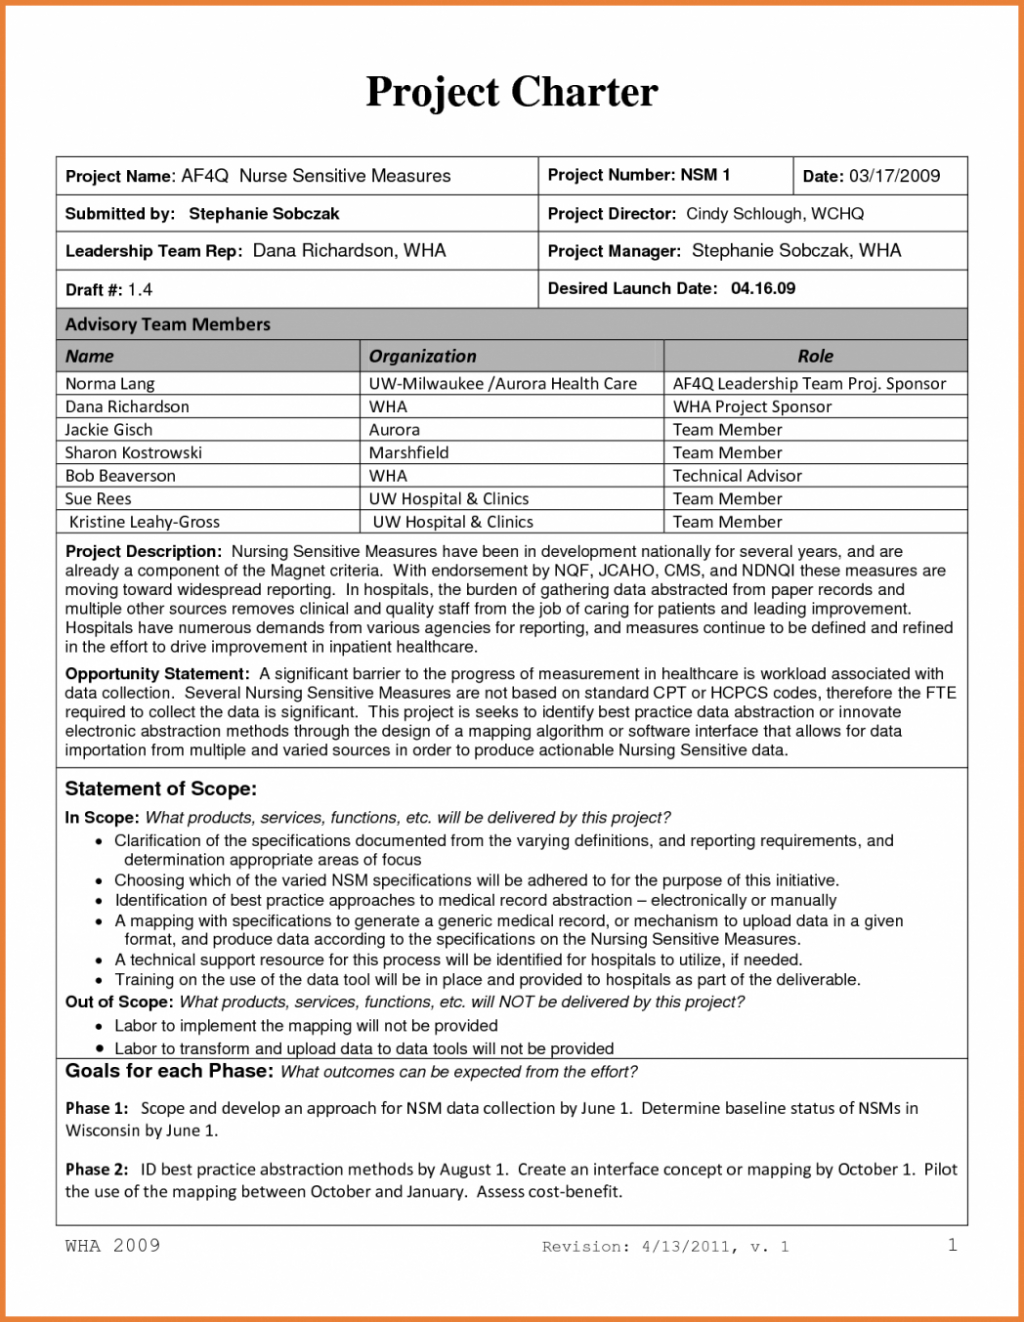 Project Management Charter Template Doc Archives Southbay Robot Pdf within Project Management Charter Templates